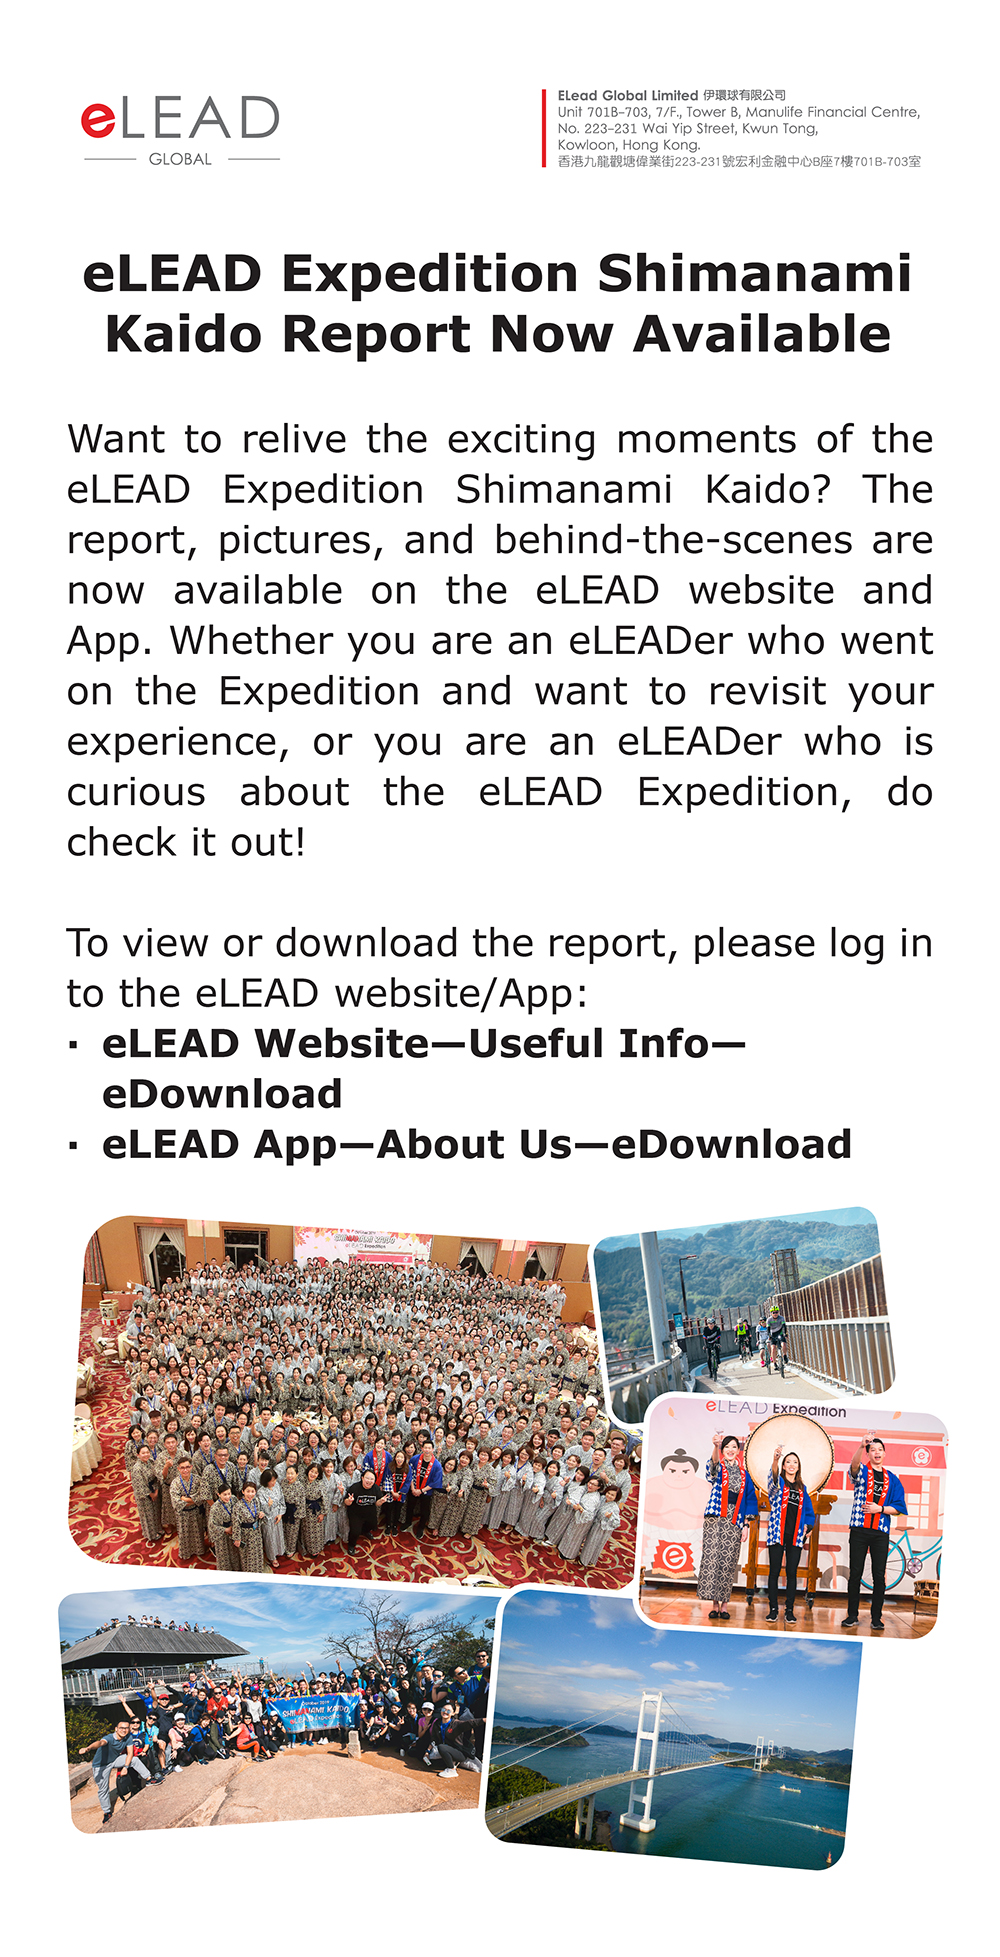 eLEAD Expedition Shimanami Kaido Report Now Available